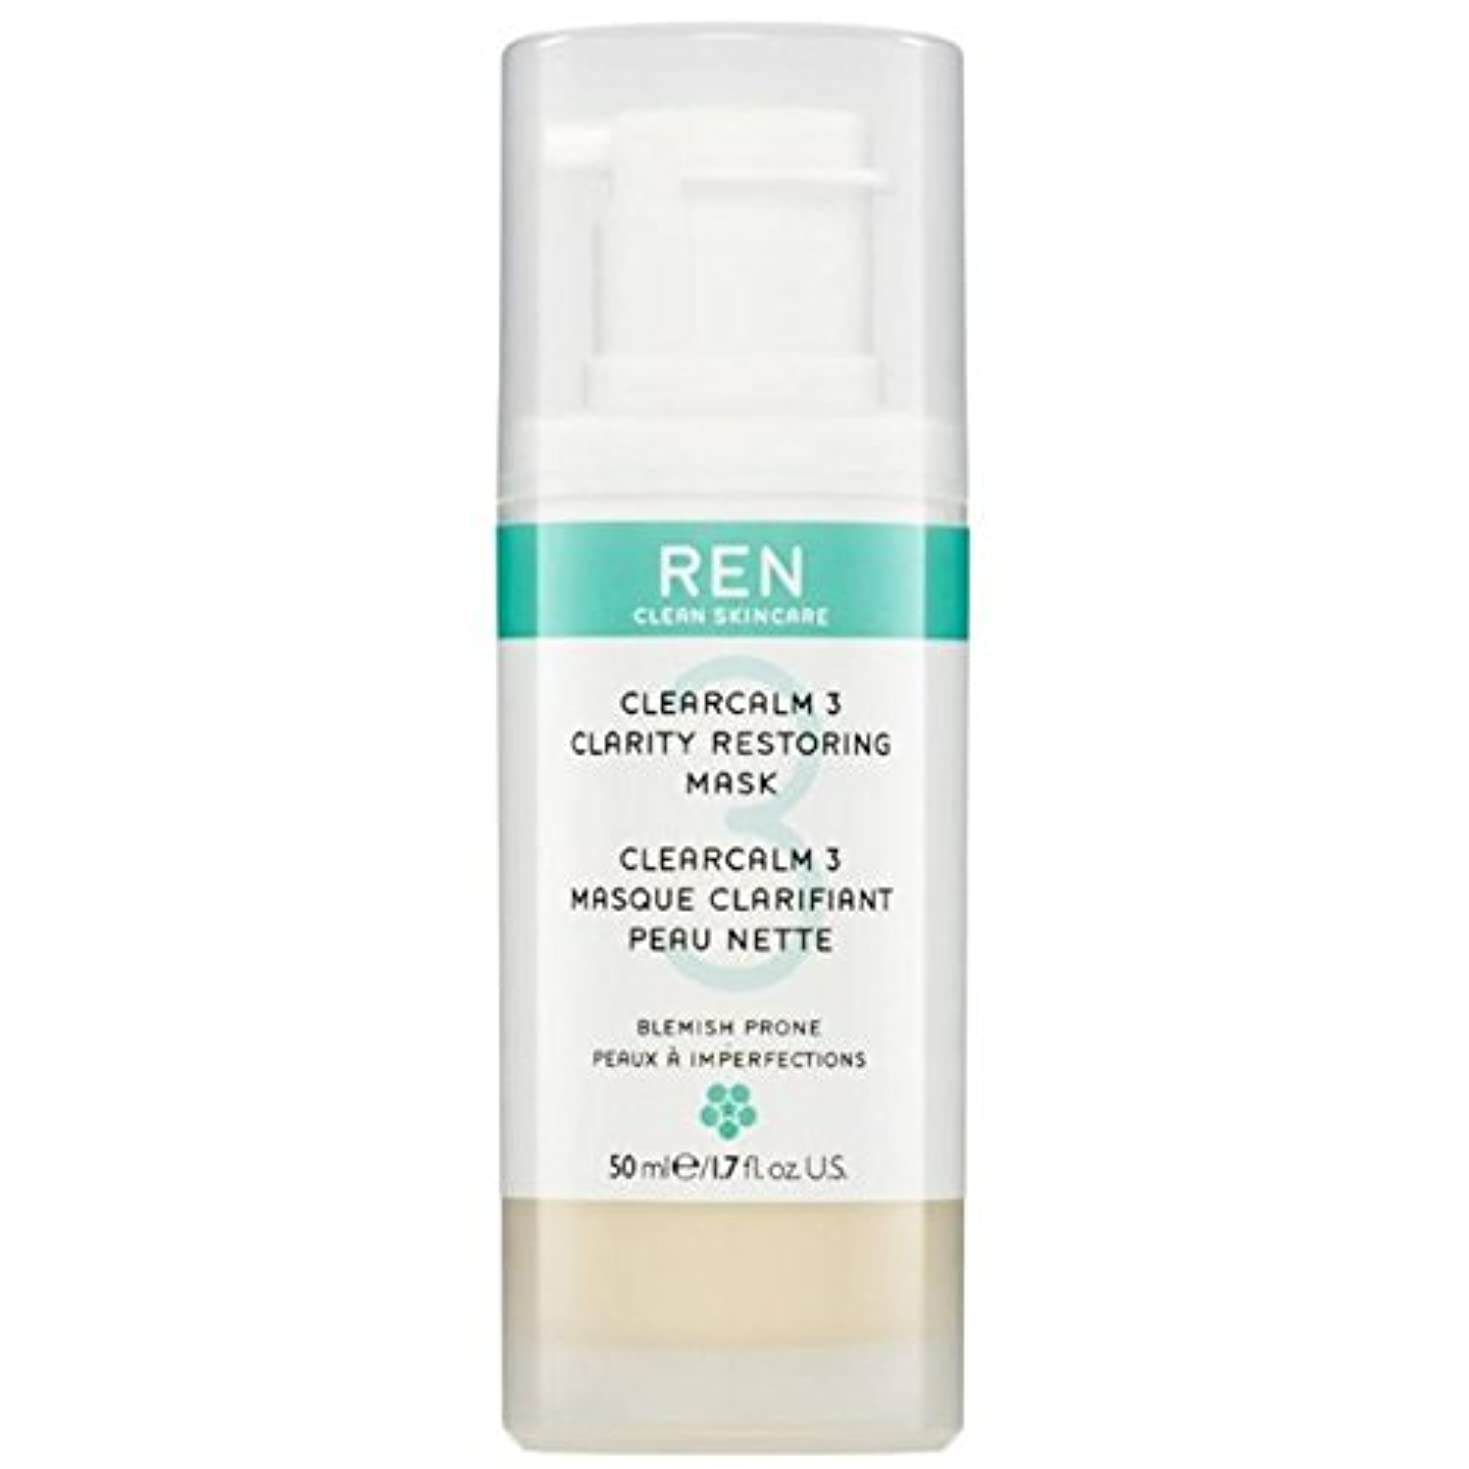 3明快復元マスク x4 - REN Clearcalm 3 Clarity Restoring Mask (Pack of 4) [並行輸入品]